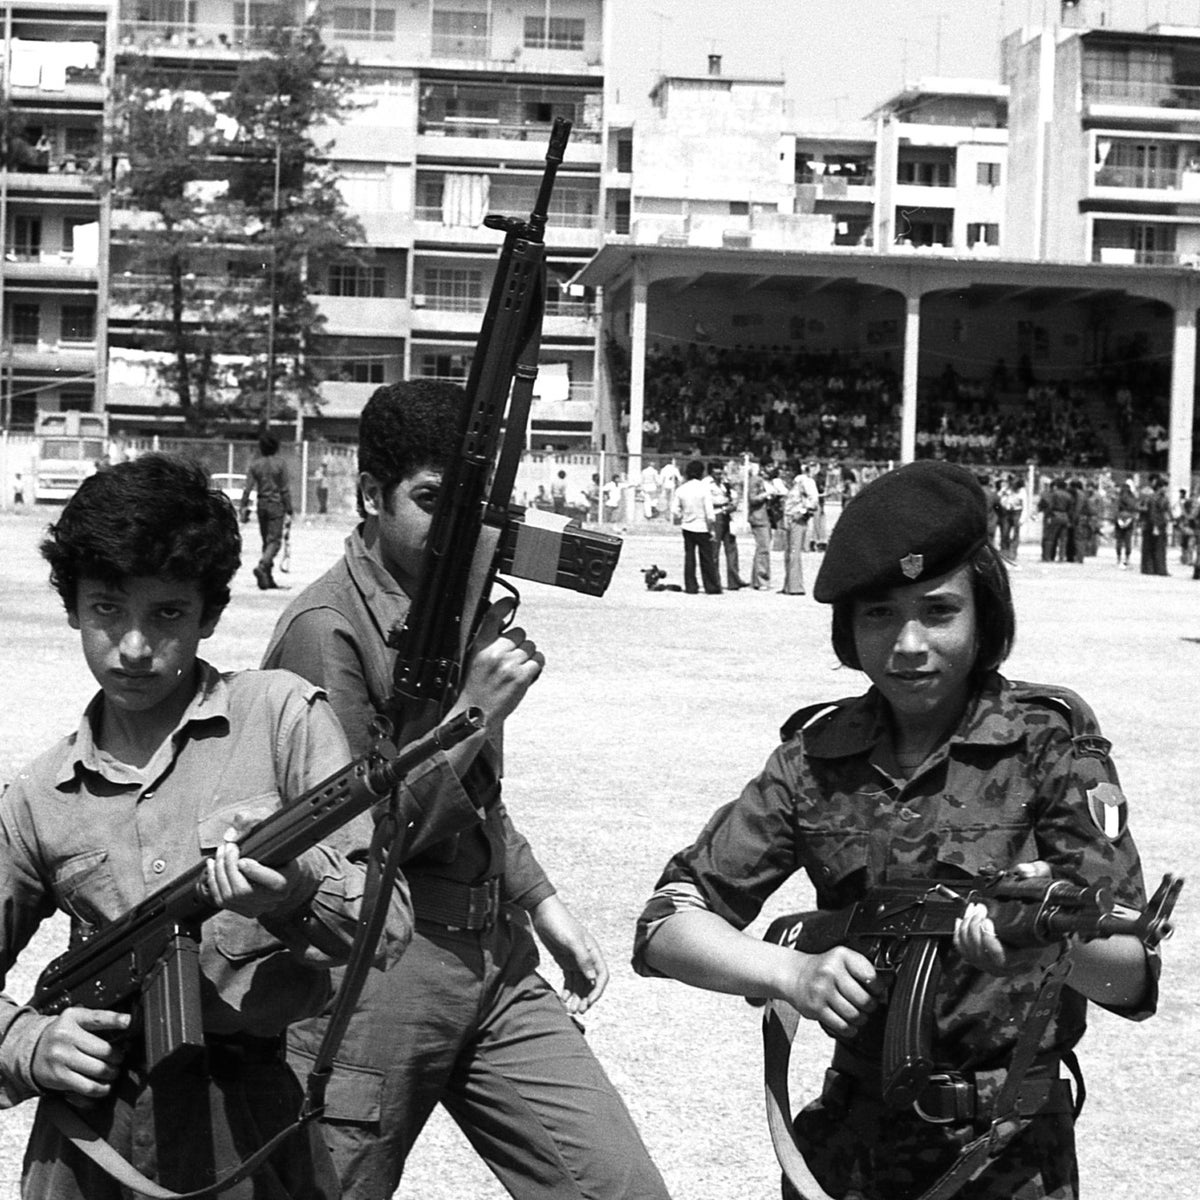 Young Palestinians in Beirut, 1975, from the documentary series on Lebanon.